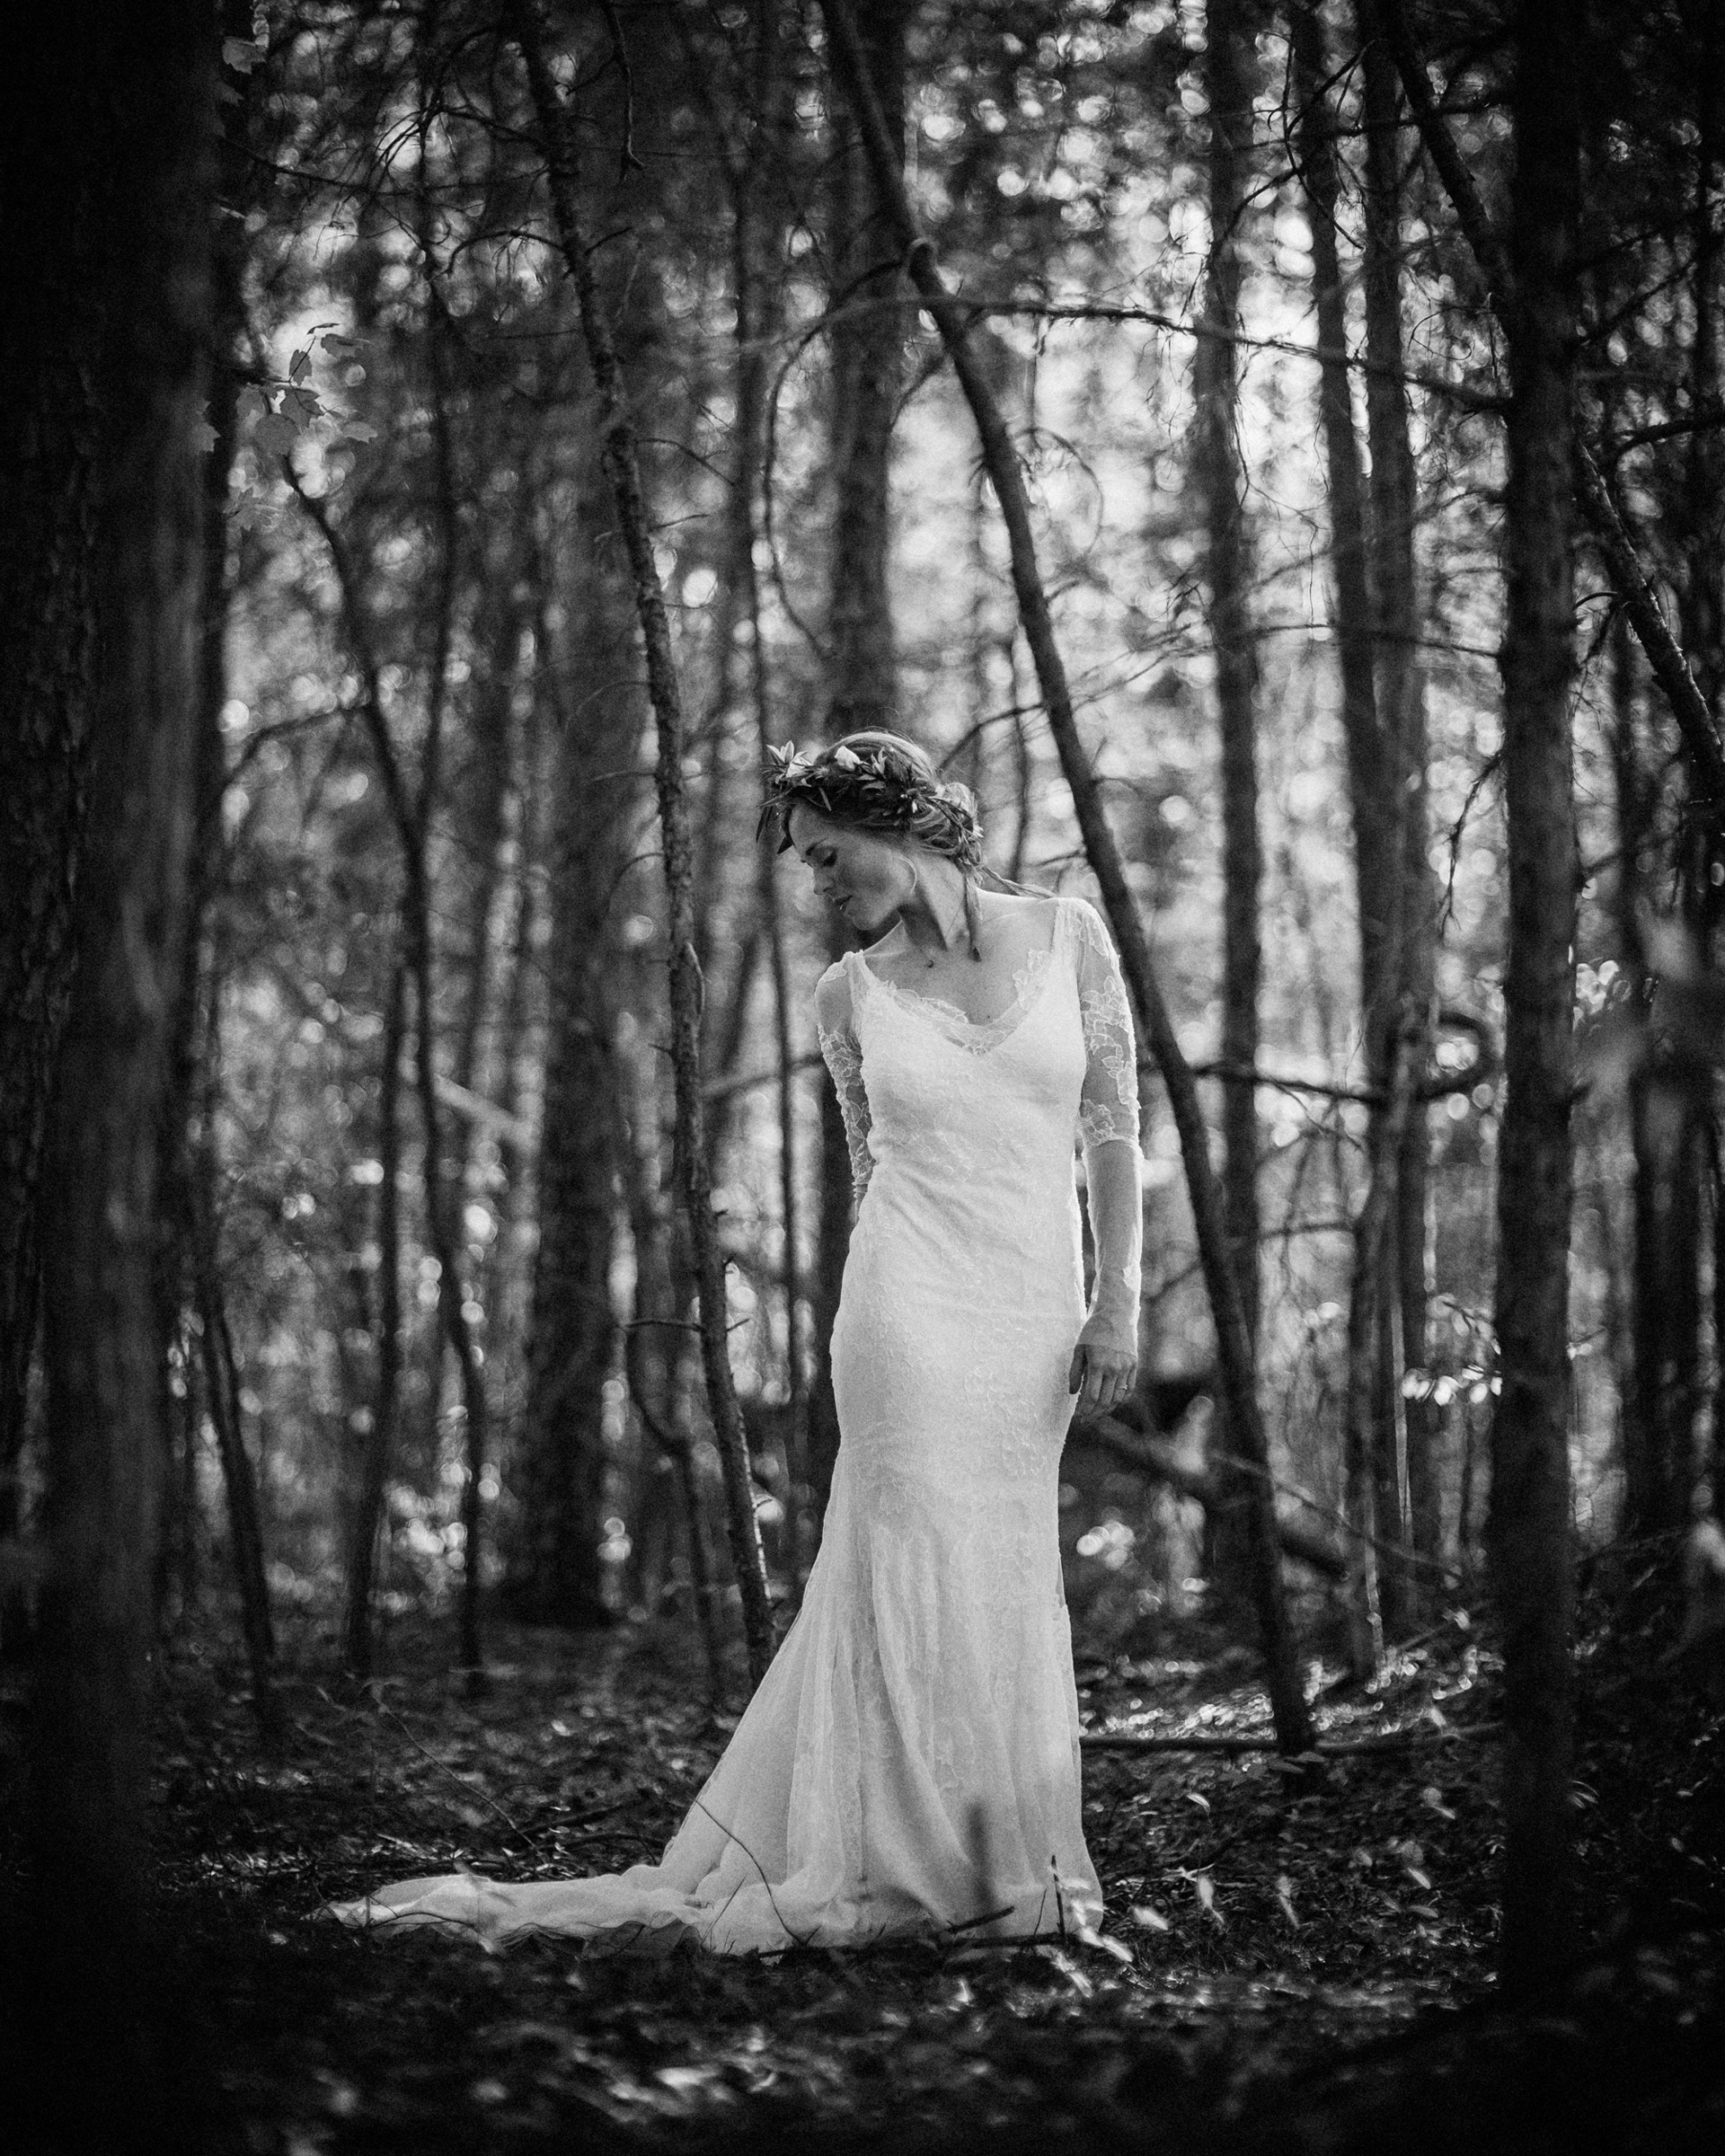 Film portrait of bride in lace sheath with updo - photo by Richard Israel Photography